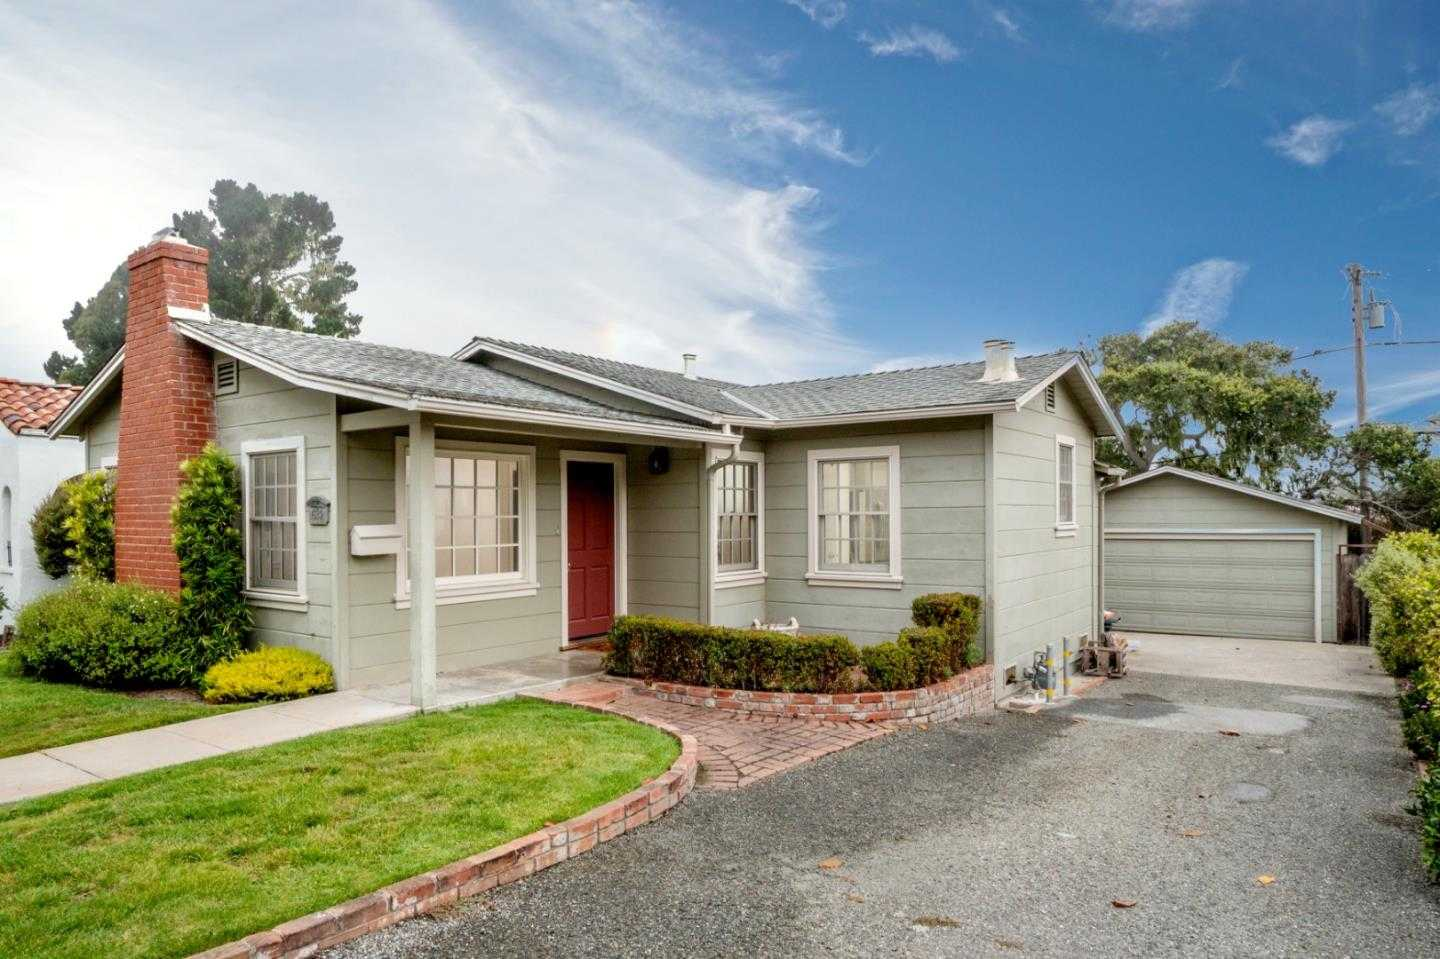 $942,000 - 3Br/2Ba -  for Sale in Pacific Grove